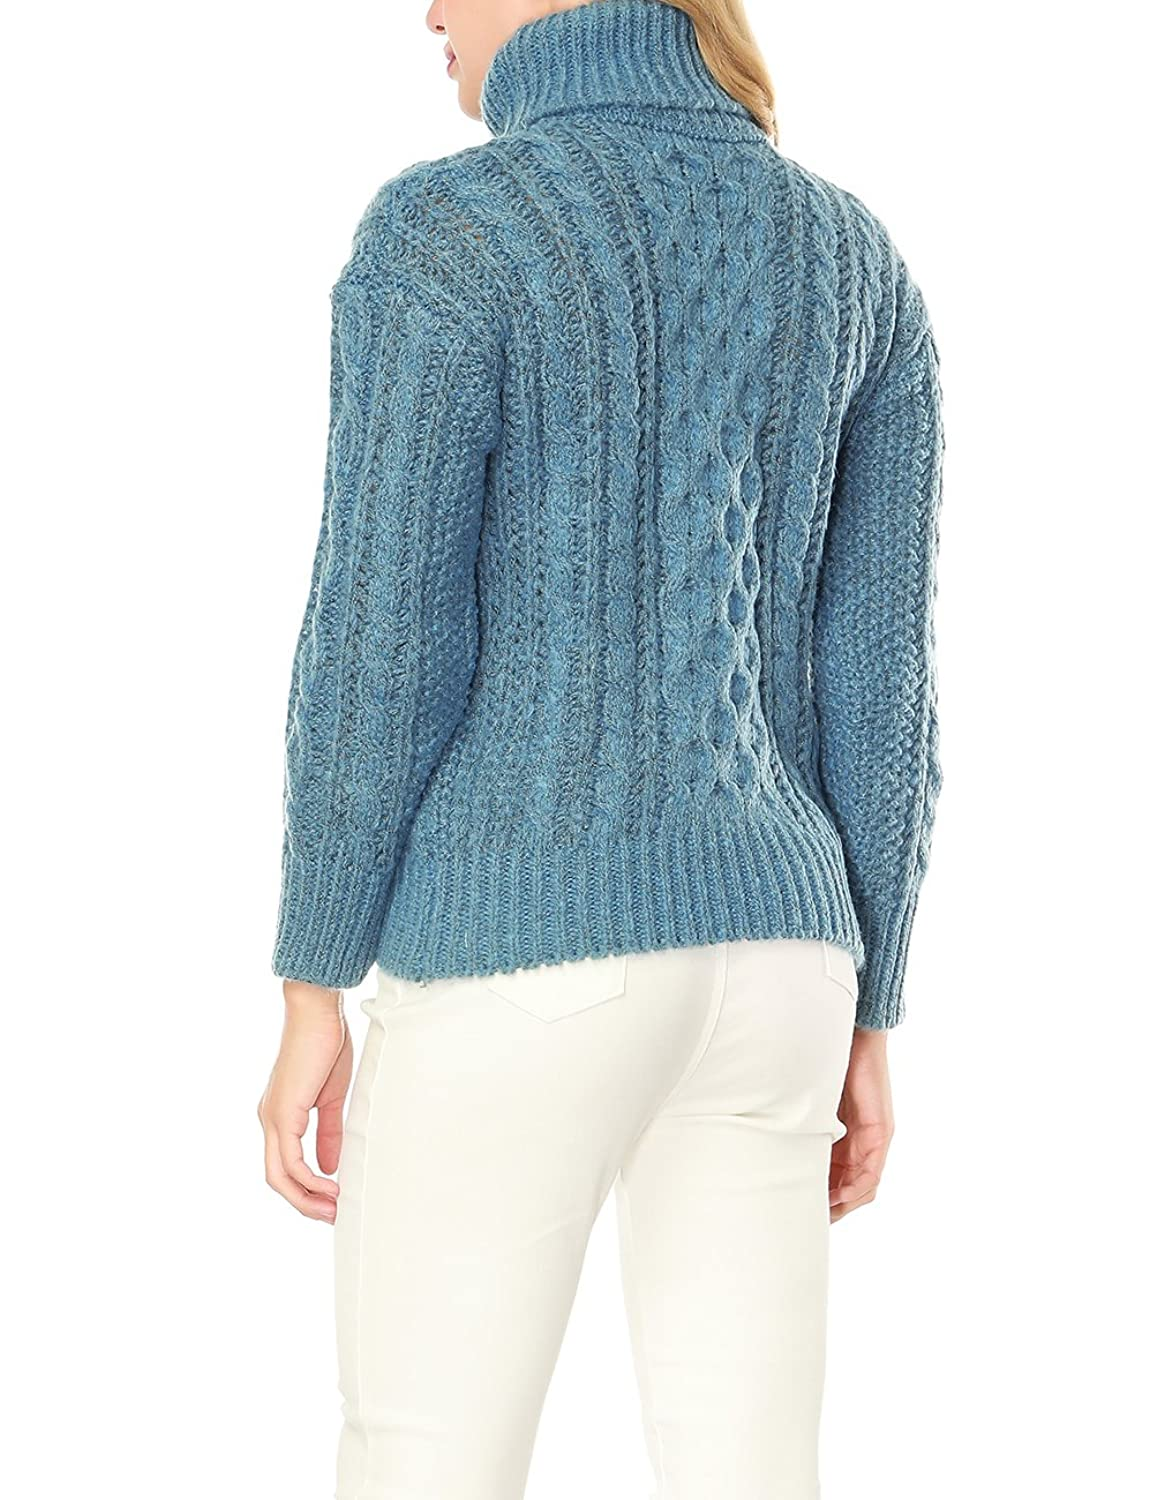 Sanifer Women Soft Baggy Cable Knit Turtleneck Sweater (Blue) at ...